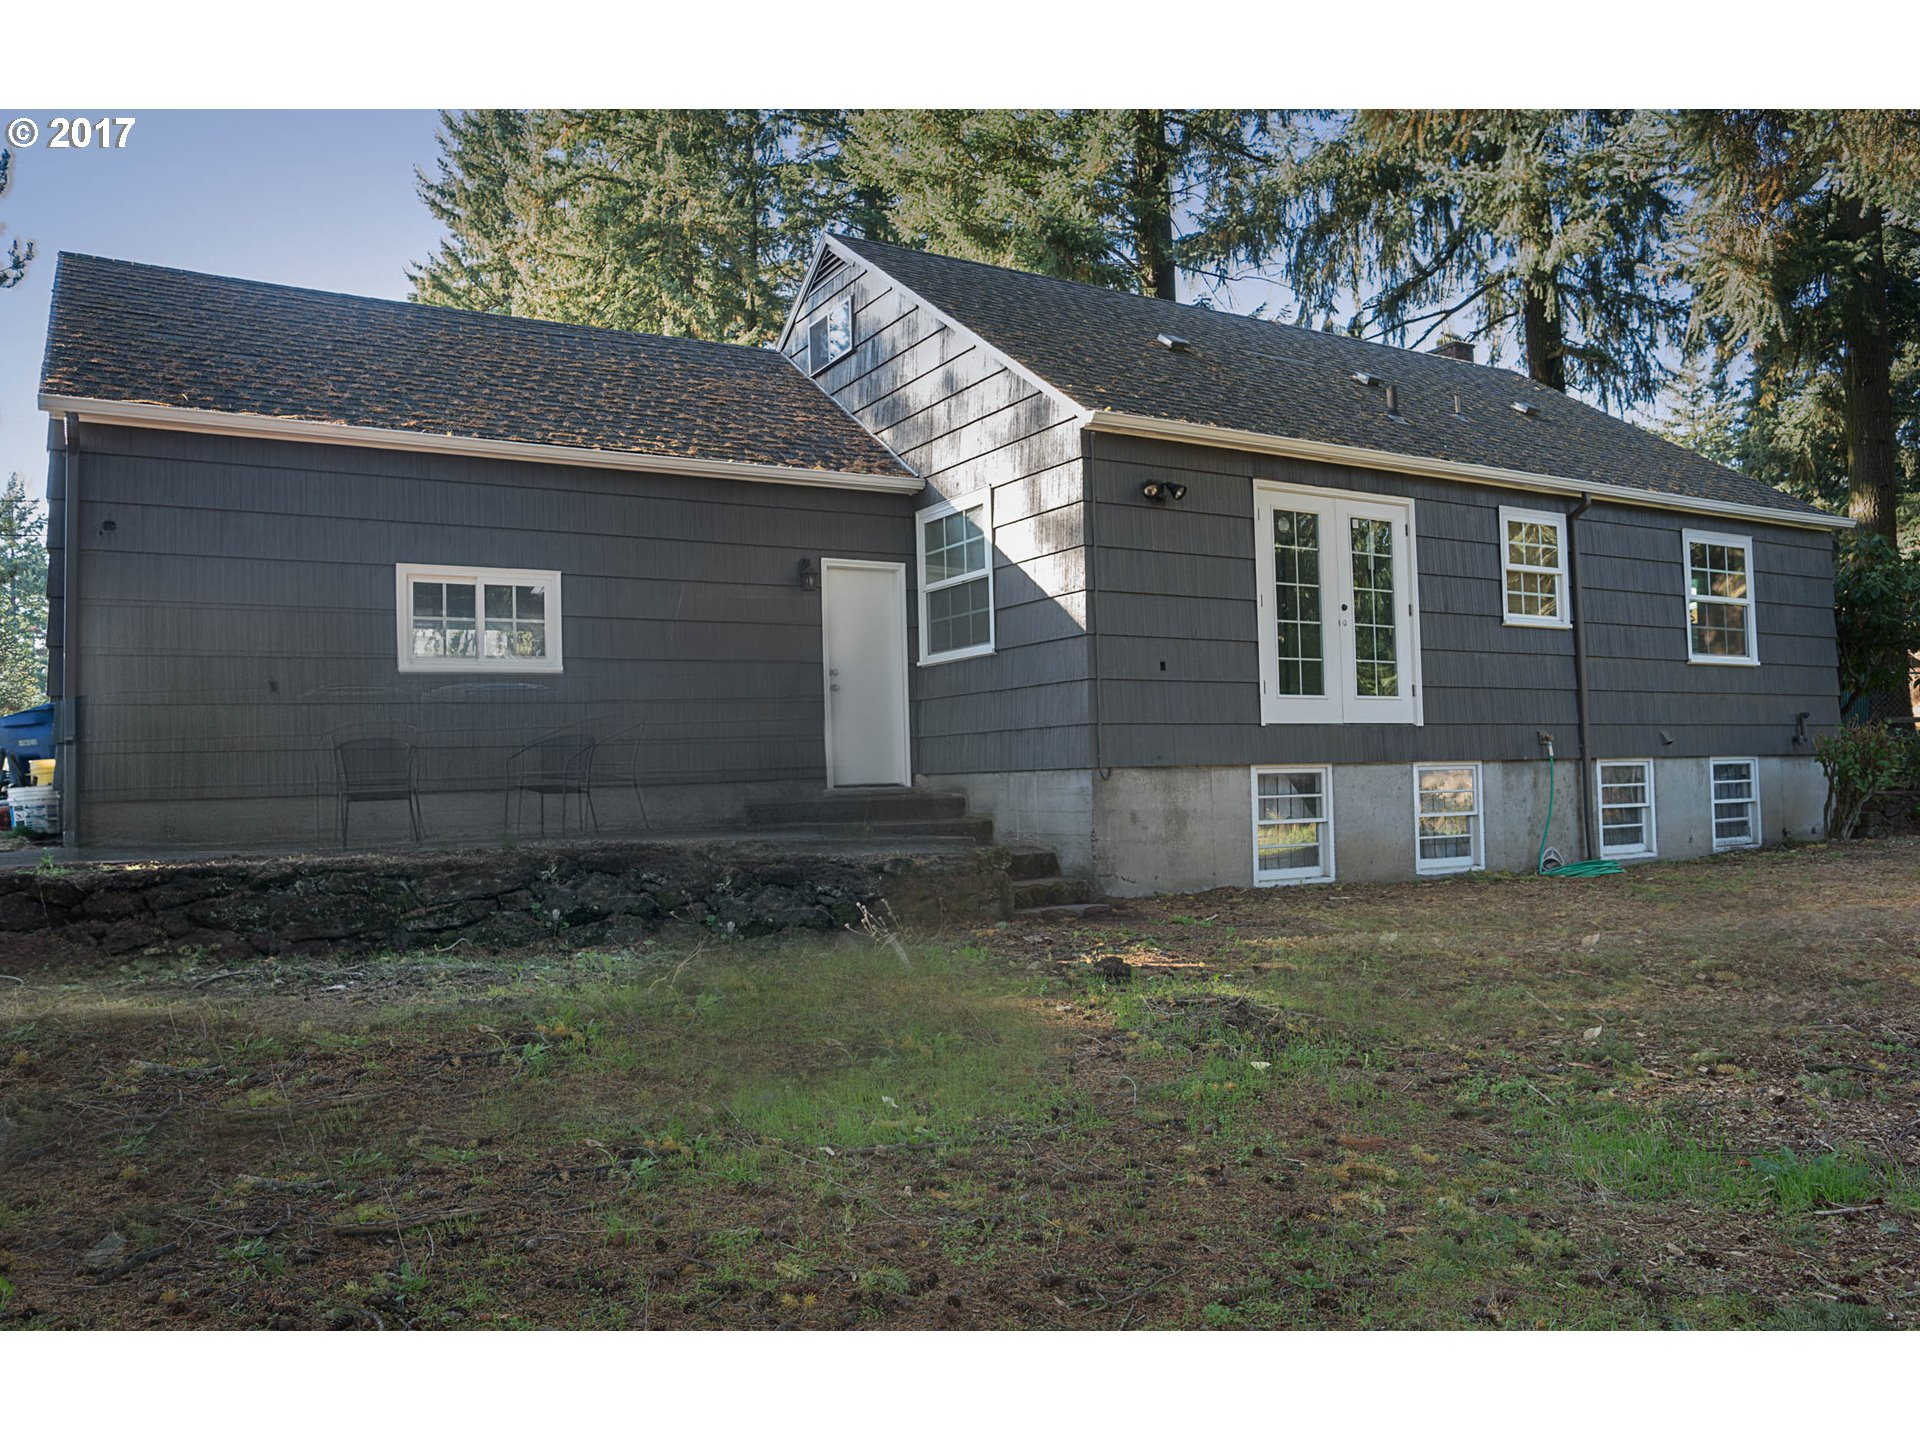 2478 sq. ft 3 bedrooms 1 bathrooms  House For Sale, Portland, OR